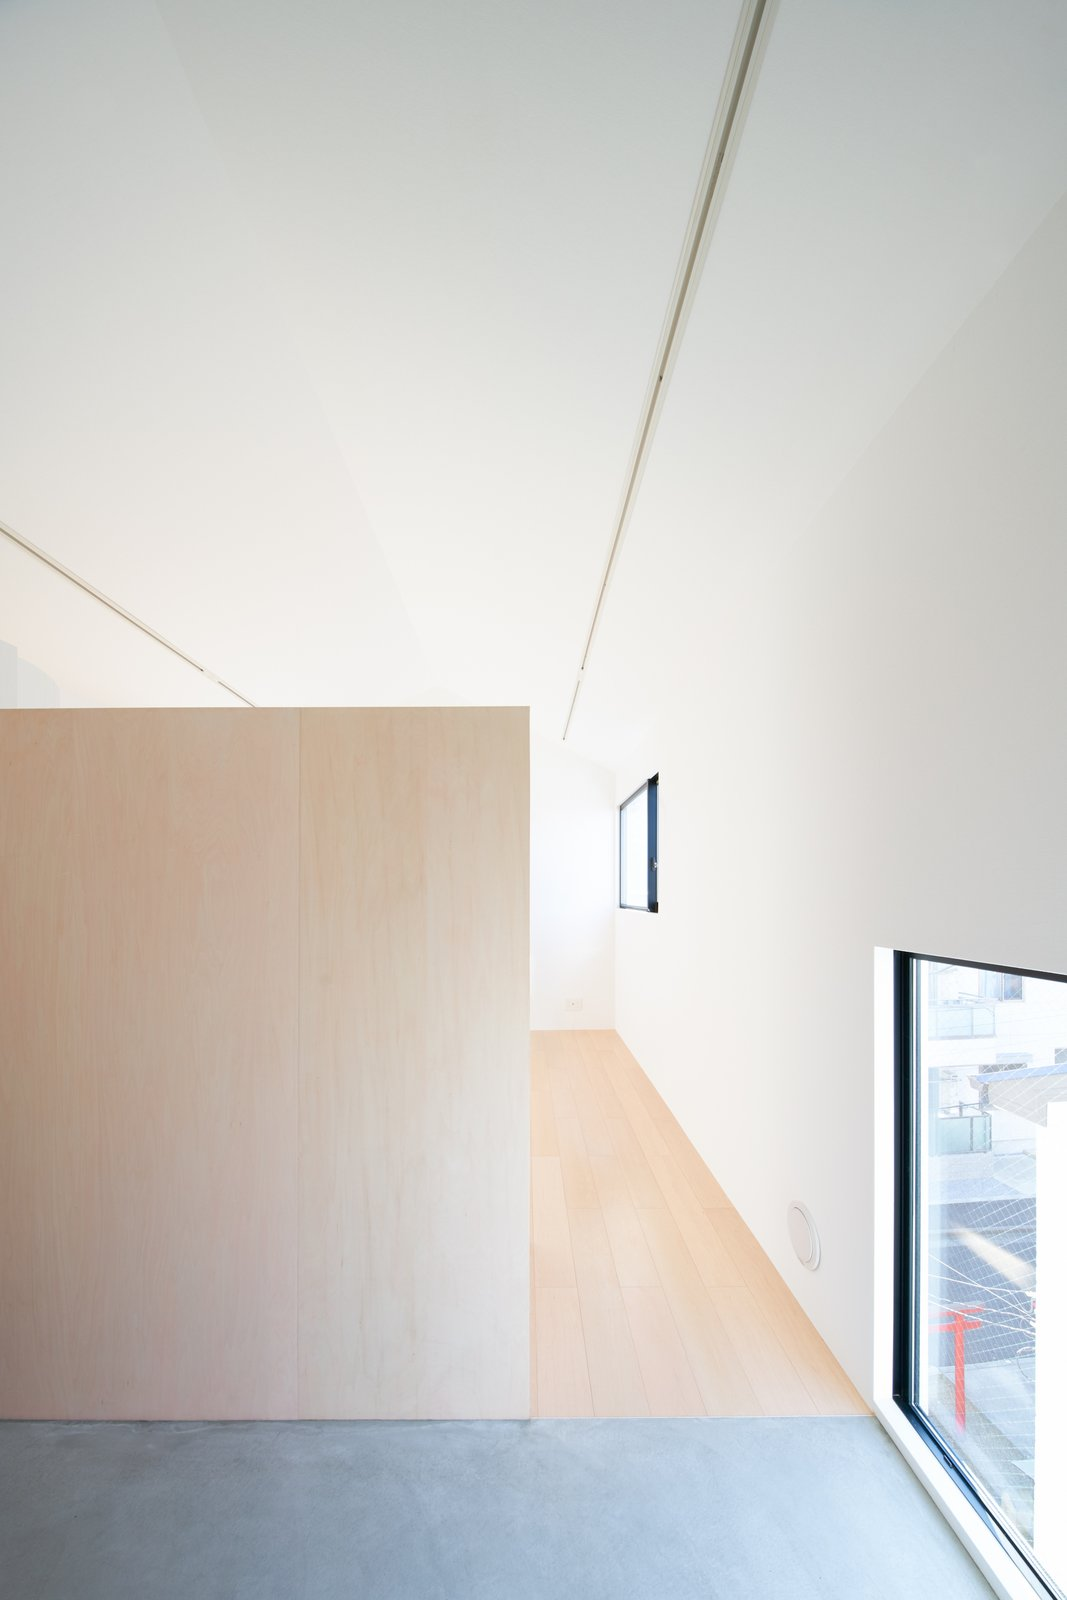 MWP15 is a collective housing complex located in Chiba, Japan, designed by SO&CO. The property is situated on a deformed site facing the elevated Kesei Line. The architects wanted to create to L-shaped volumes that would be arranged to have a small courtyard in the middle. In order to expand the interiors, the architects decided to use thinner wall insulation through the use of a steel wall refractory. The interiors feature light wood and concrete flooring to clearly delineate the internal programs.  Interiors